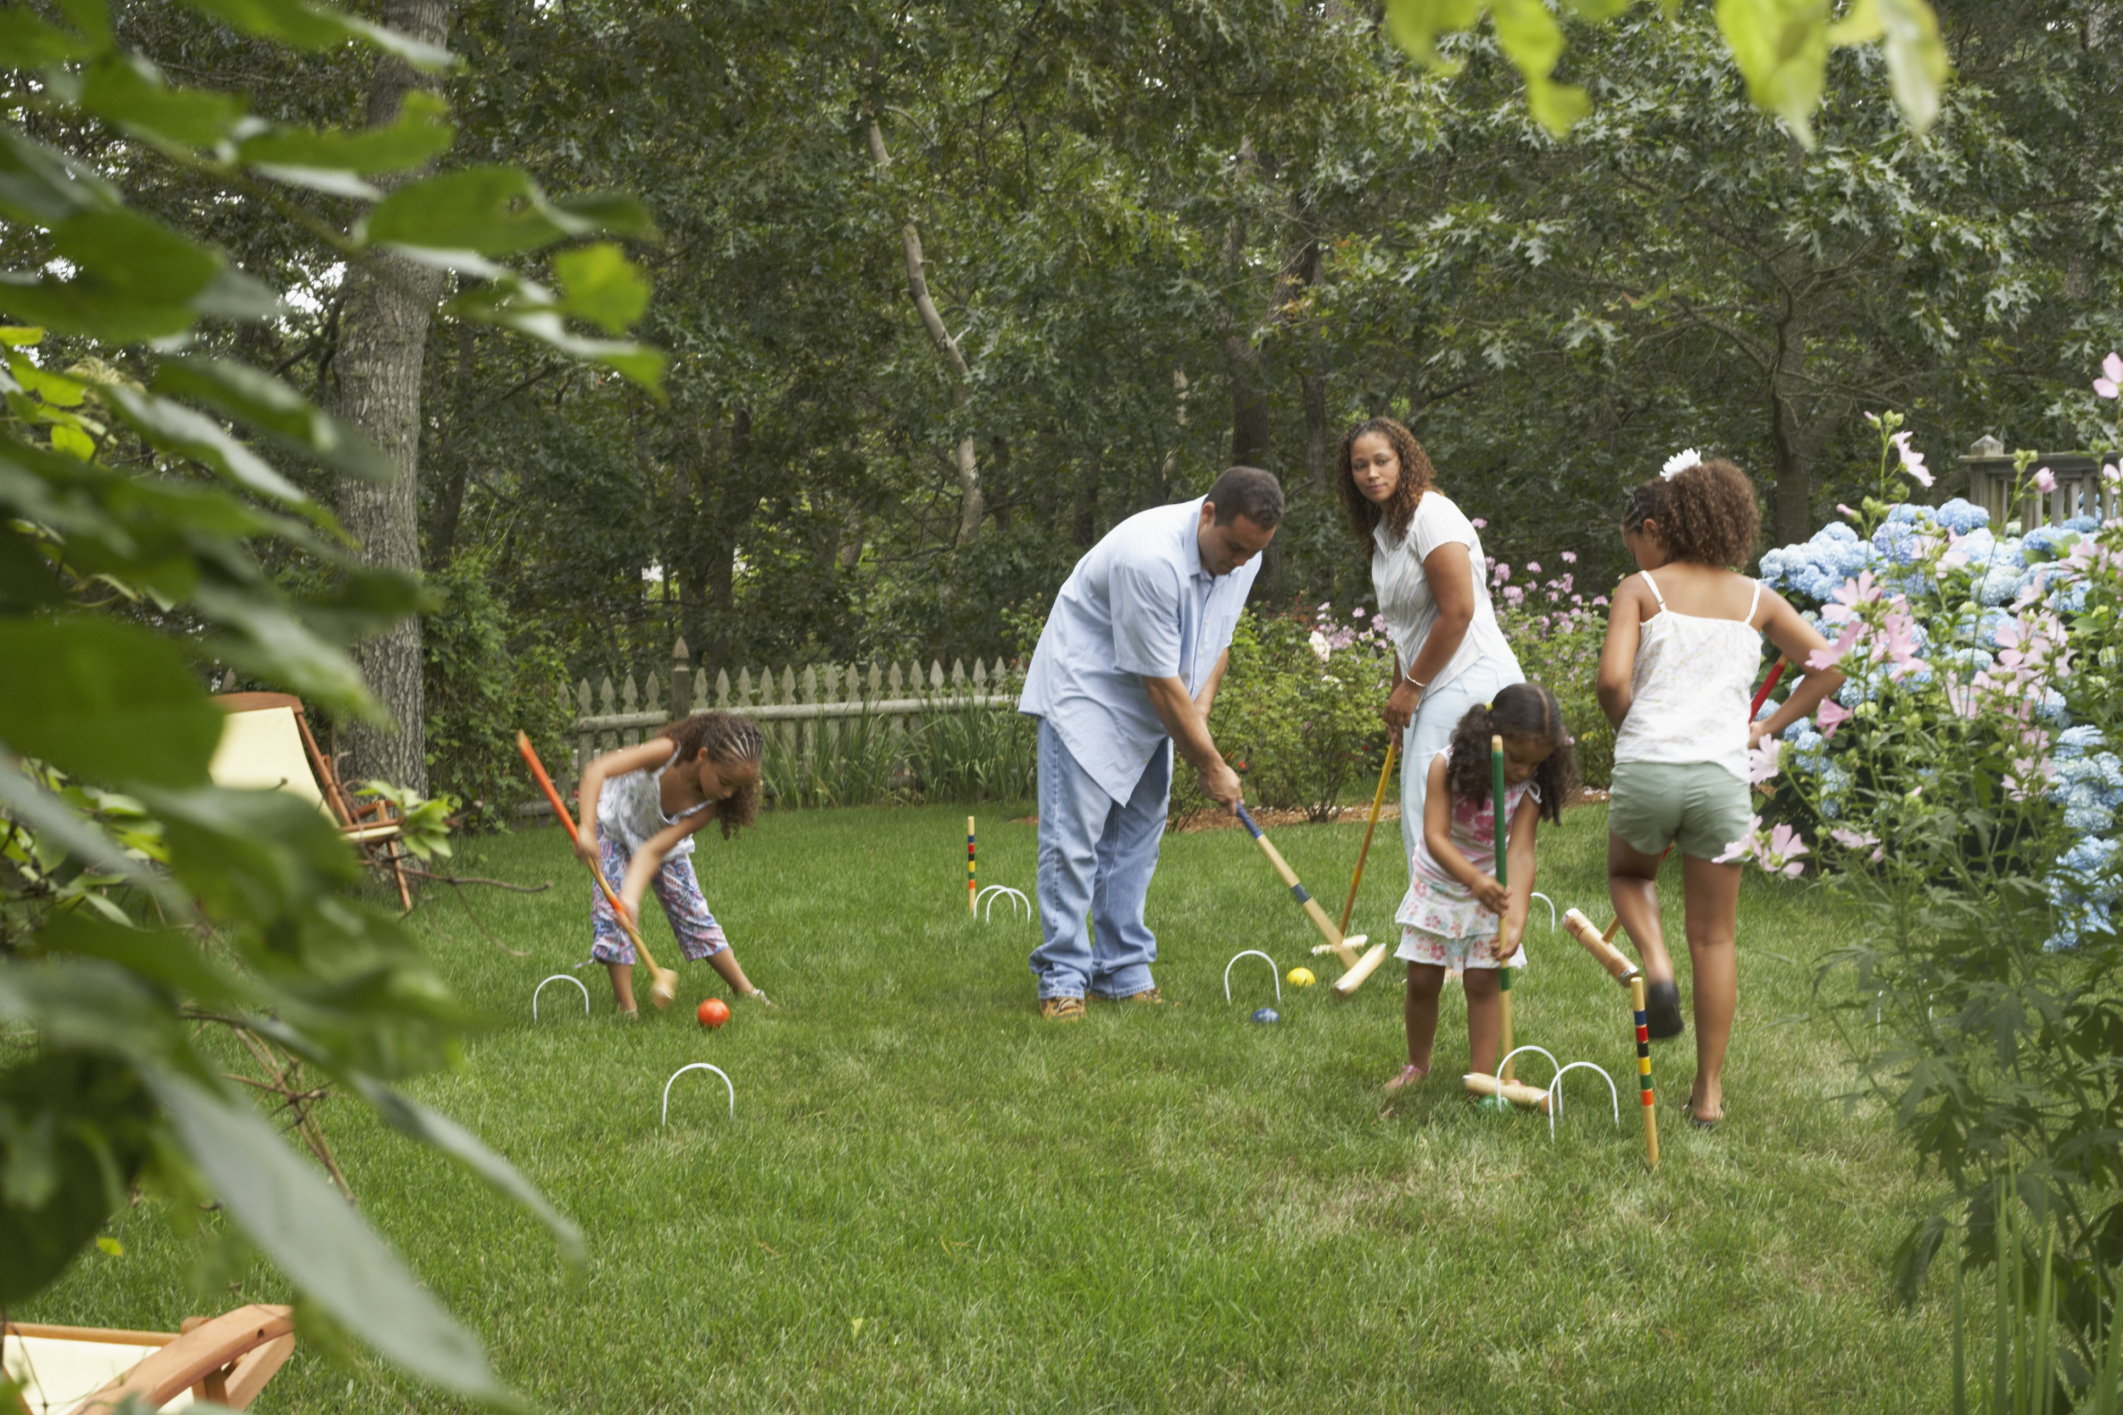 olsen cadillac 5 unique games you can play in your backyard